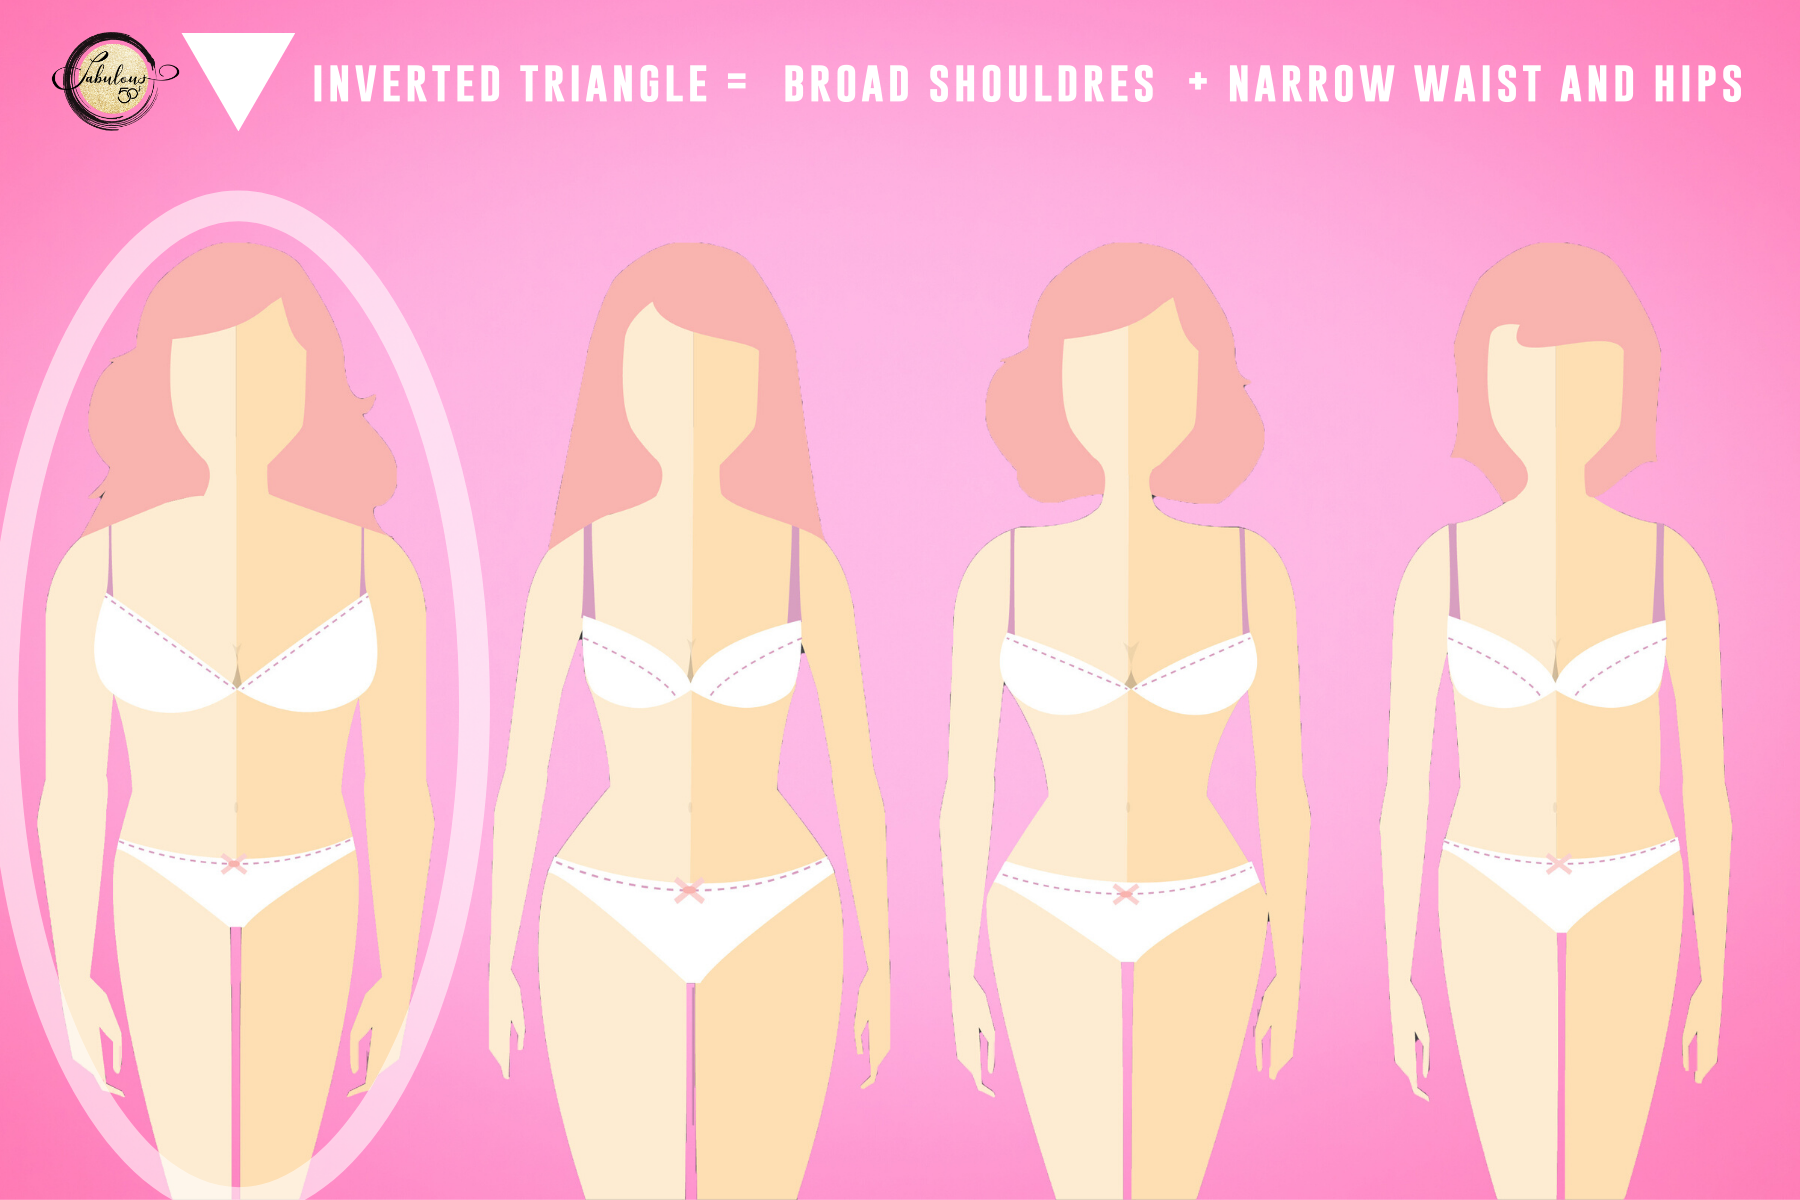 BODY TYPE: How To Dress For An Inverted Triangle